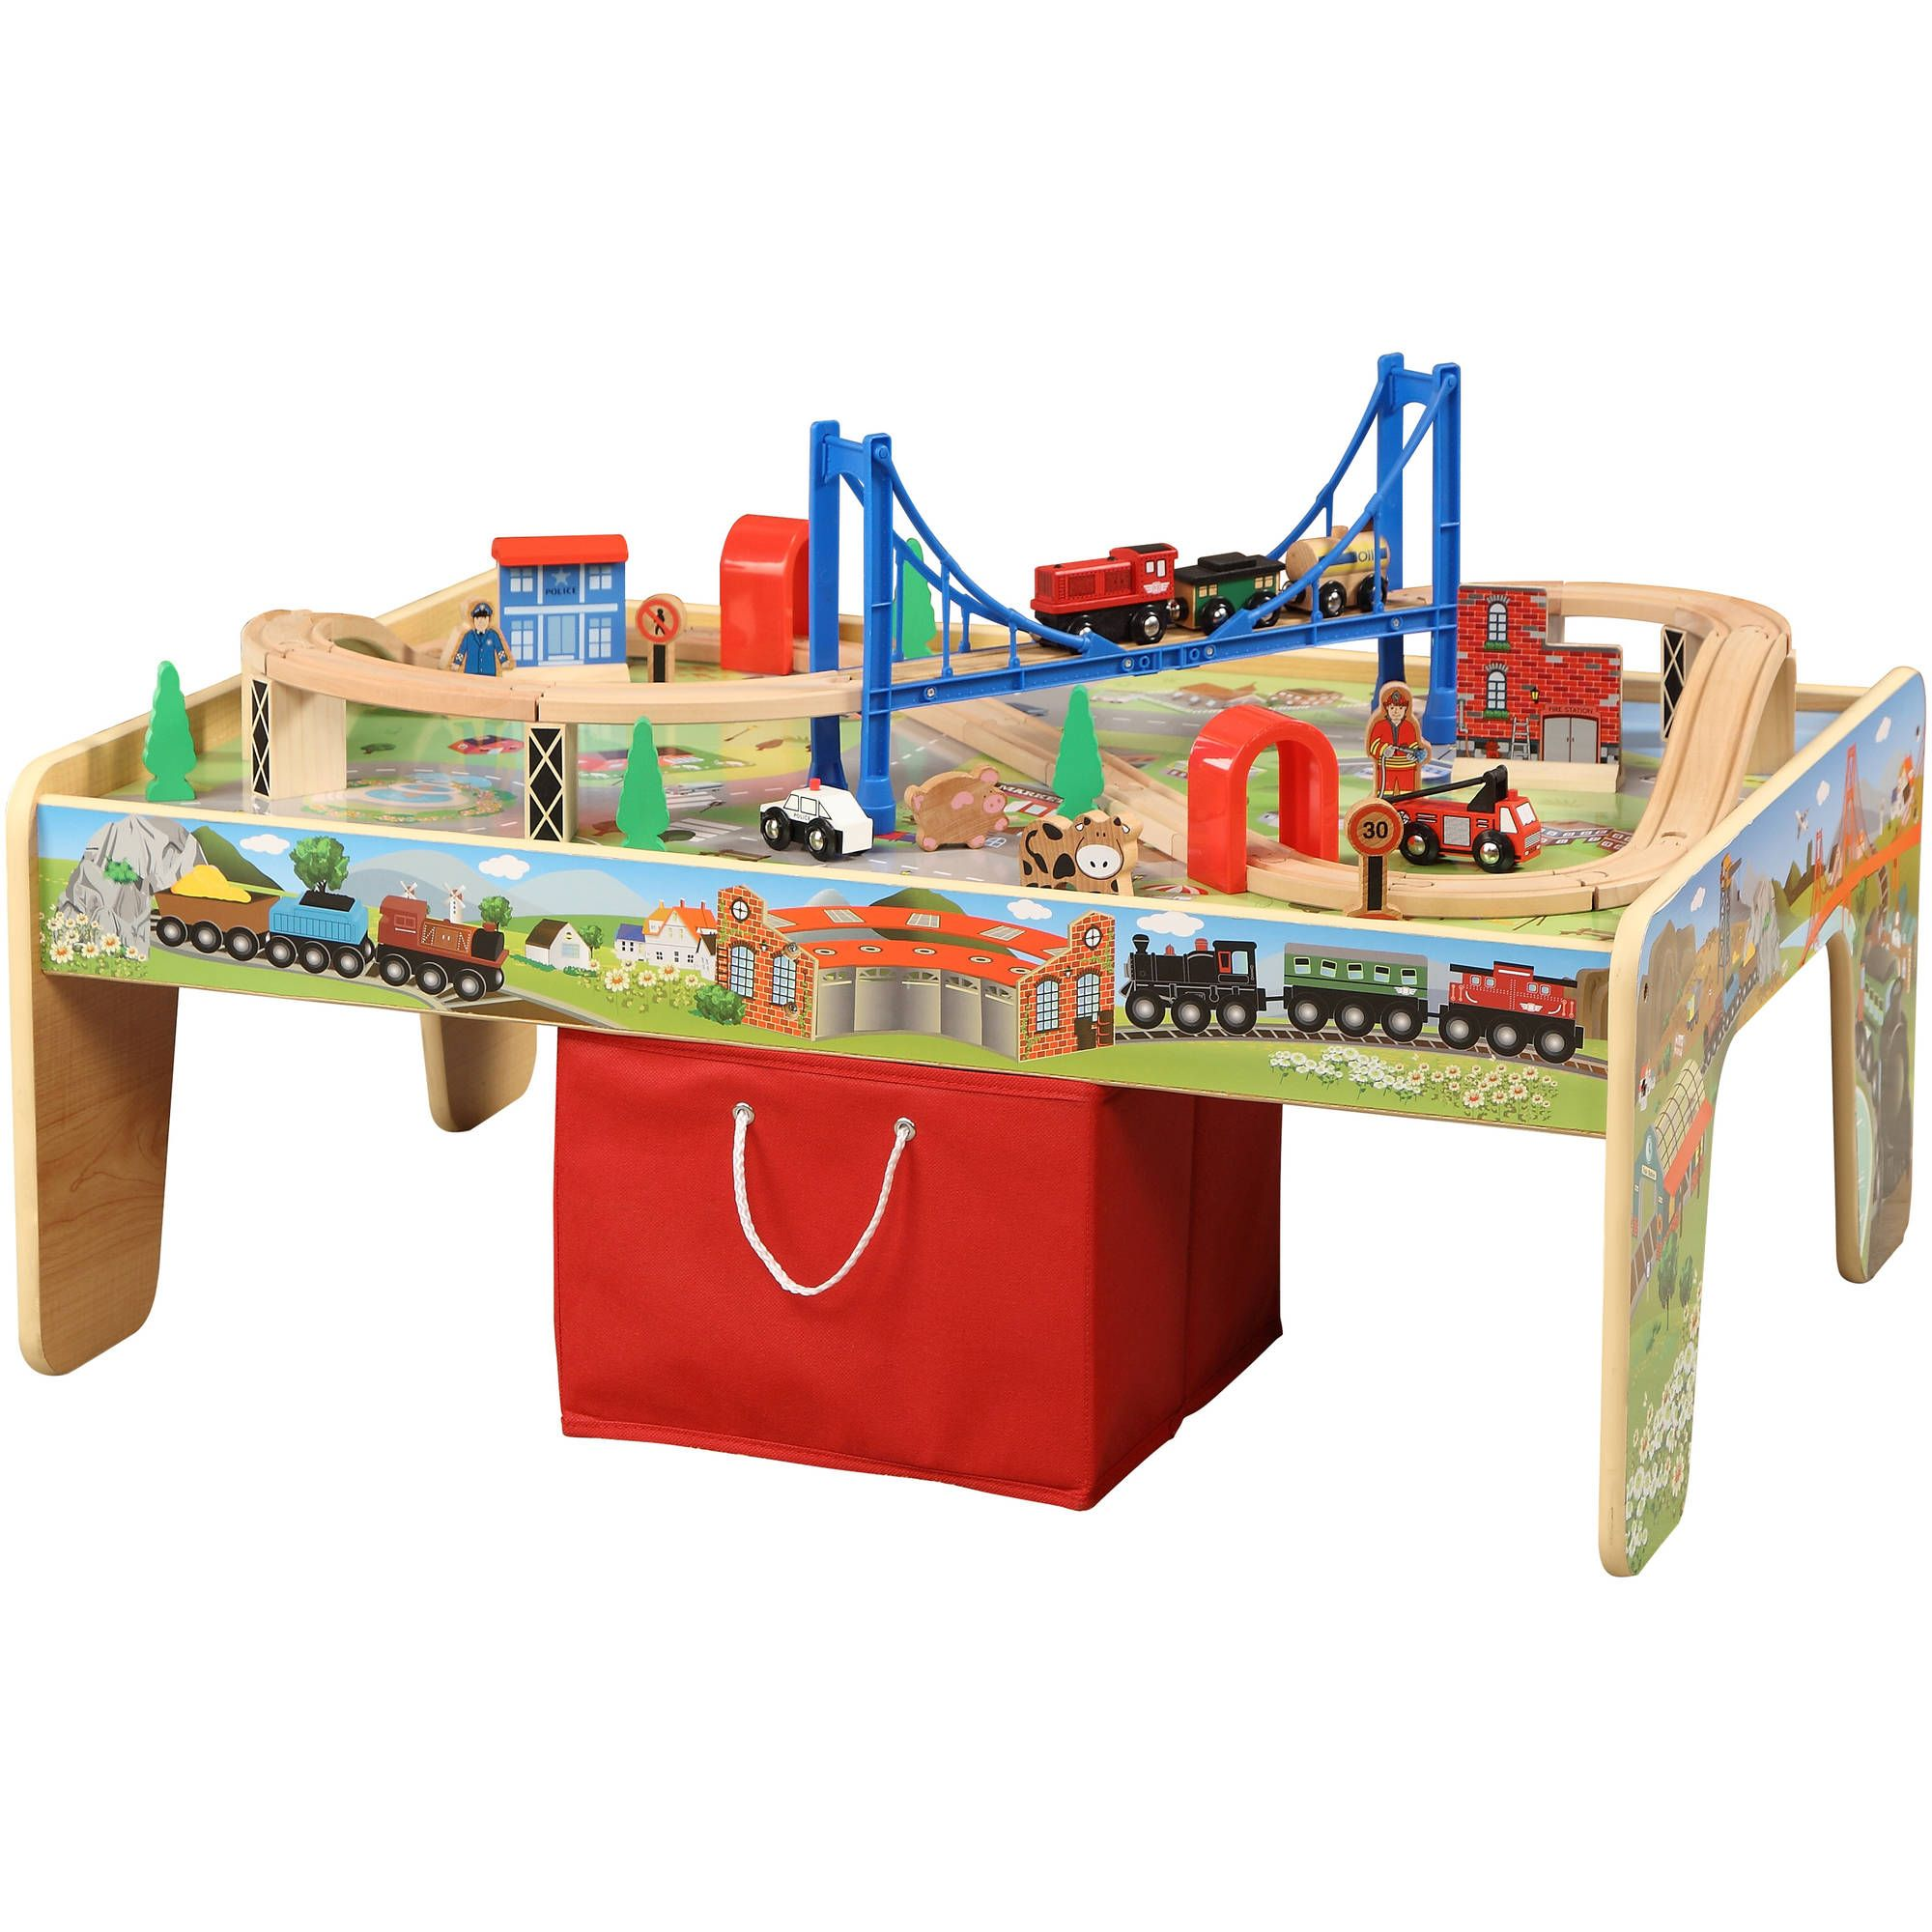 Wonderful 100 Piece Mountain Train Set And Wooden Activity Table   Walmart.com